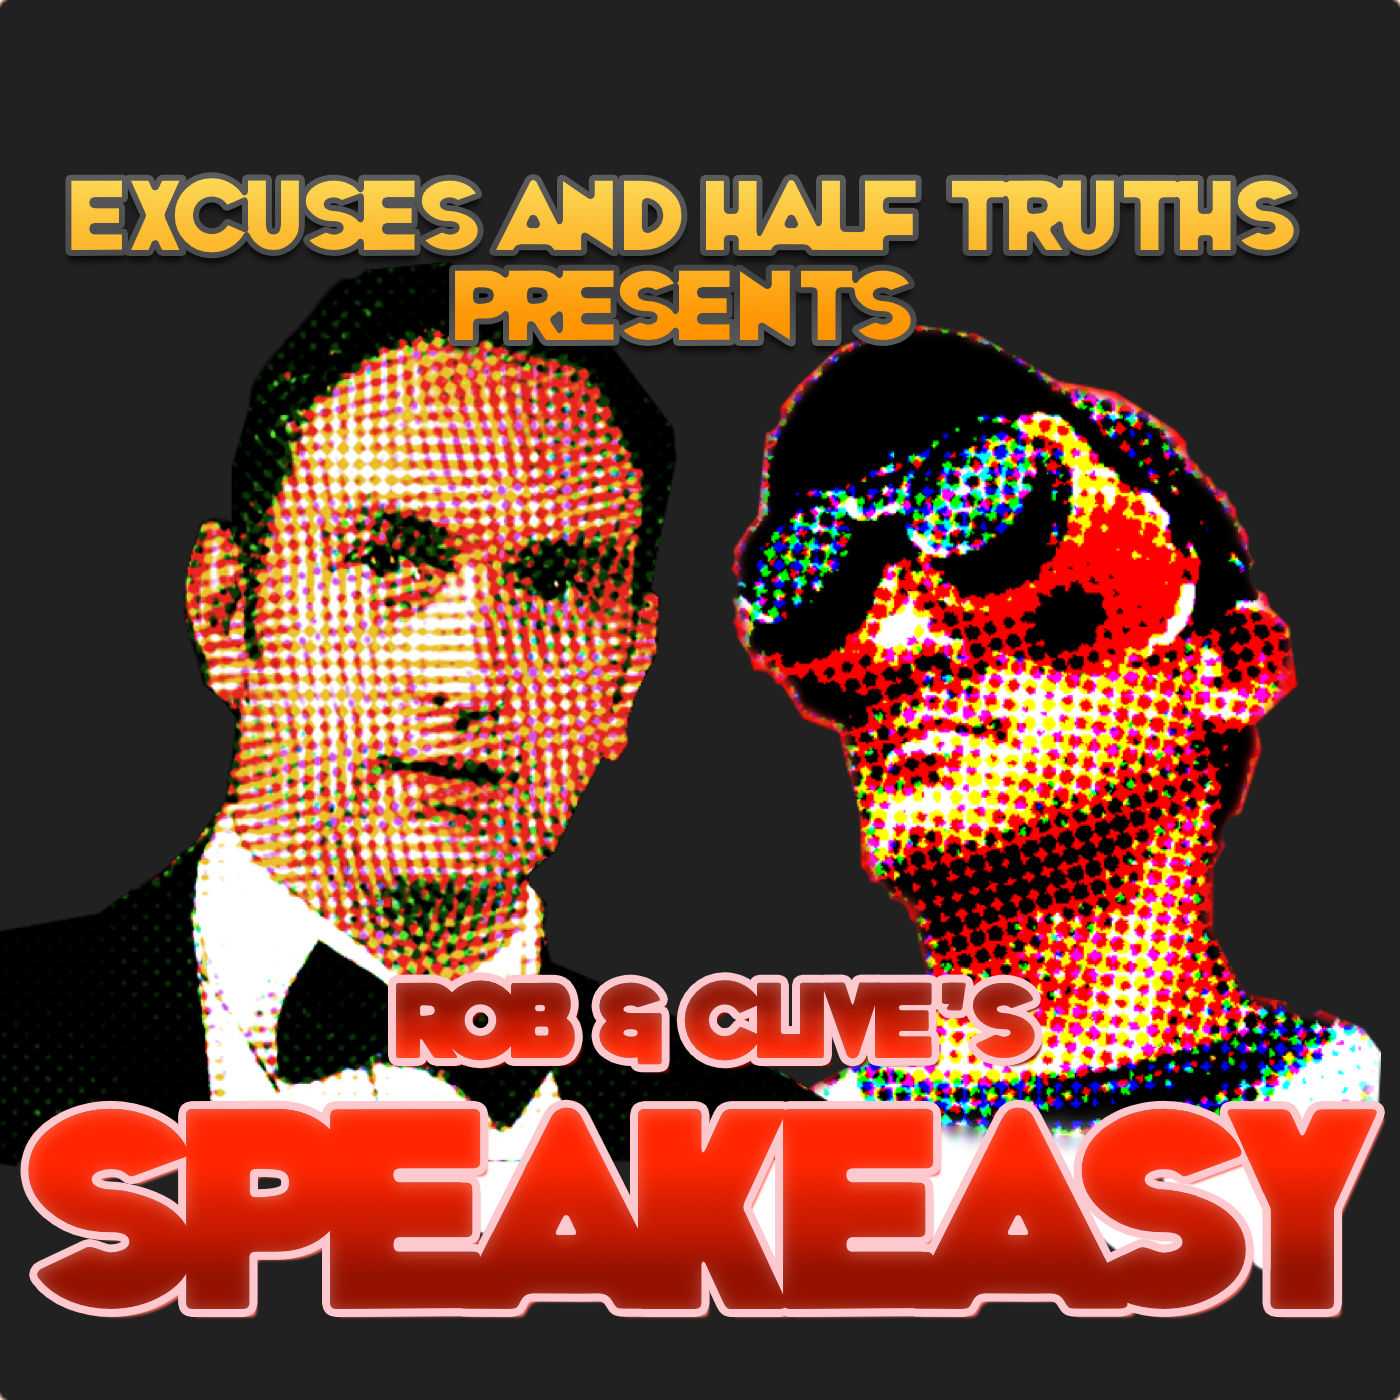 Excuses And Half Truths presents Rob & Clive's Speakeasy show art